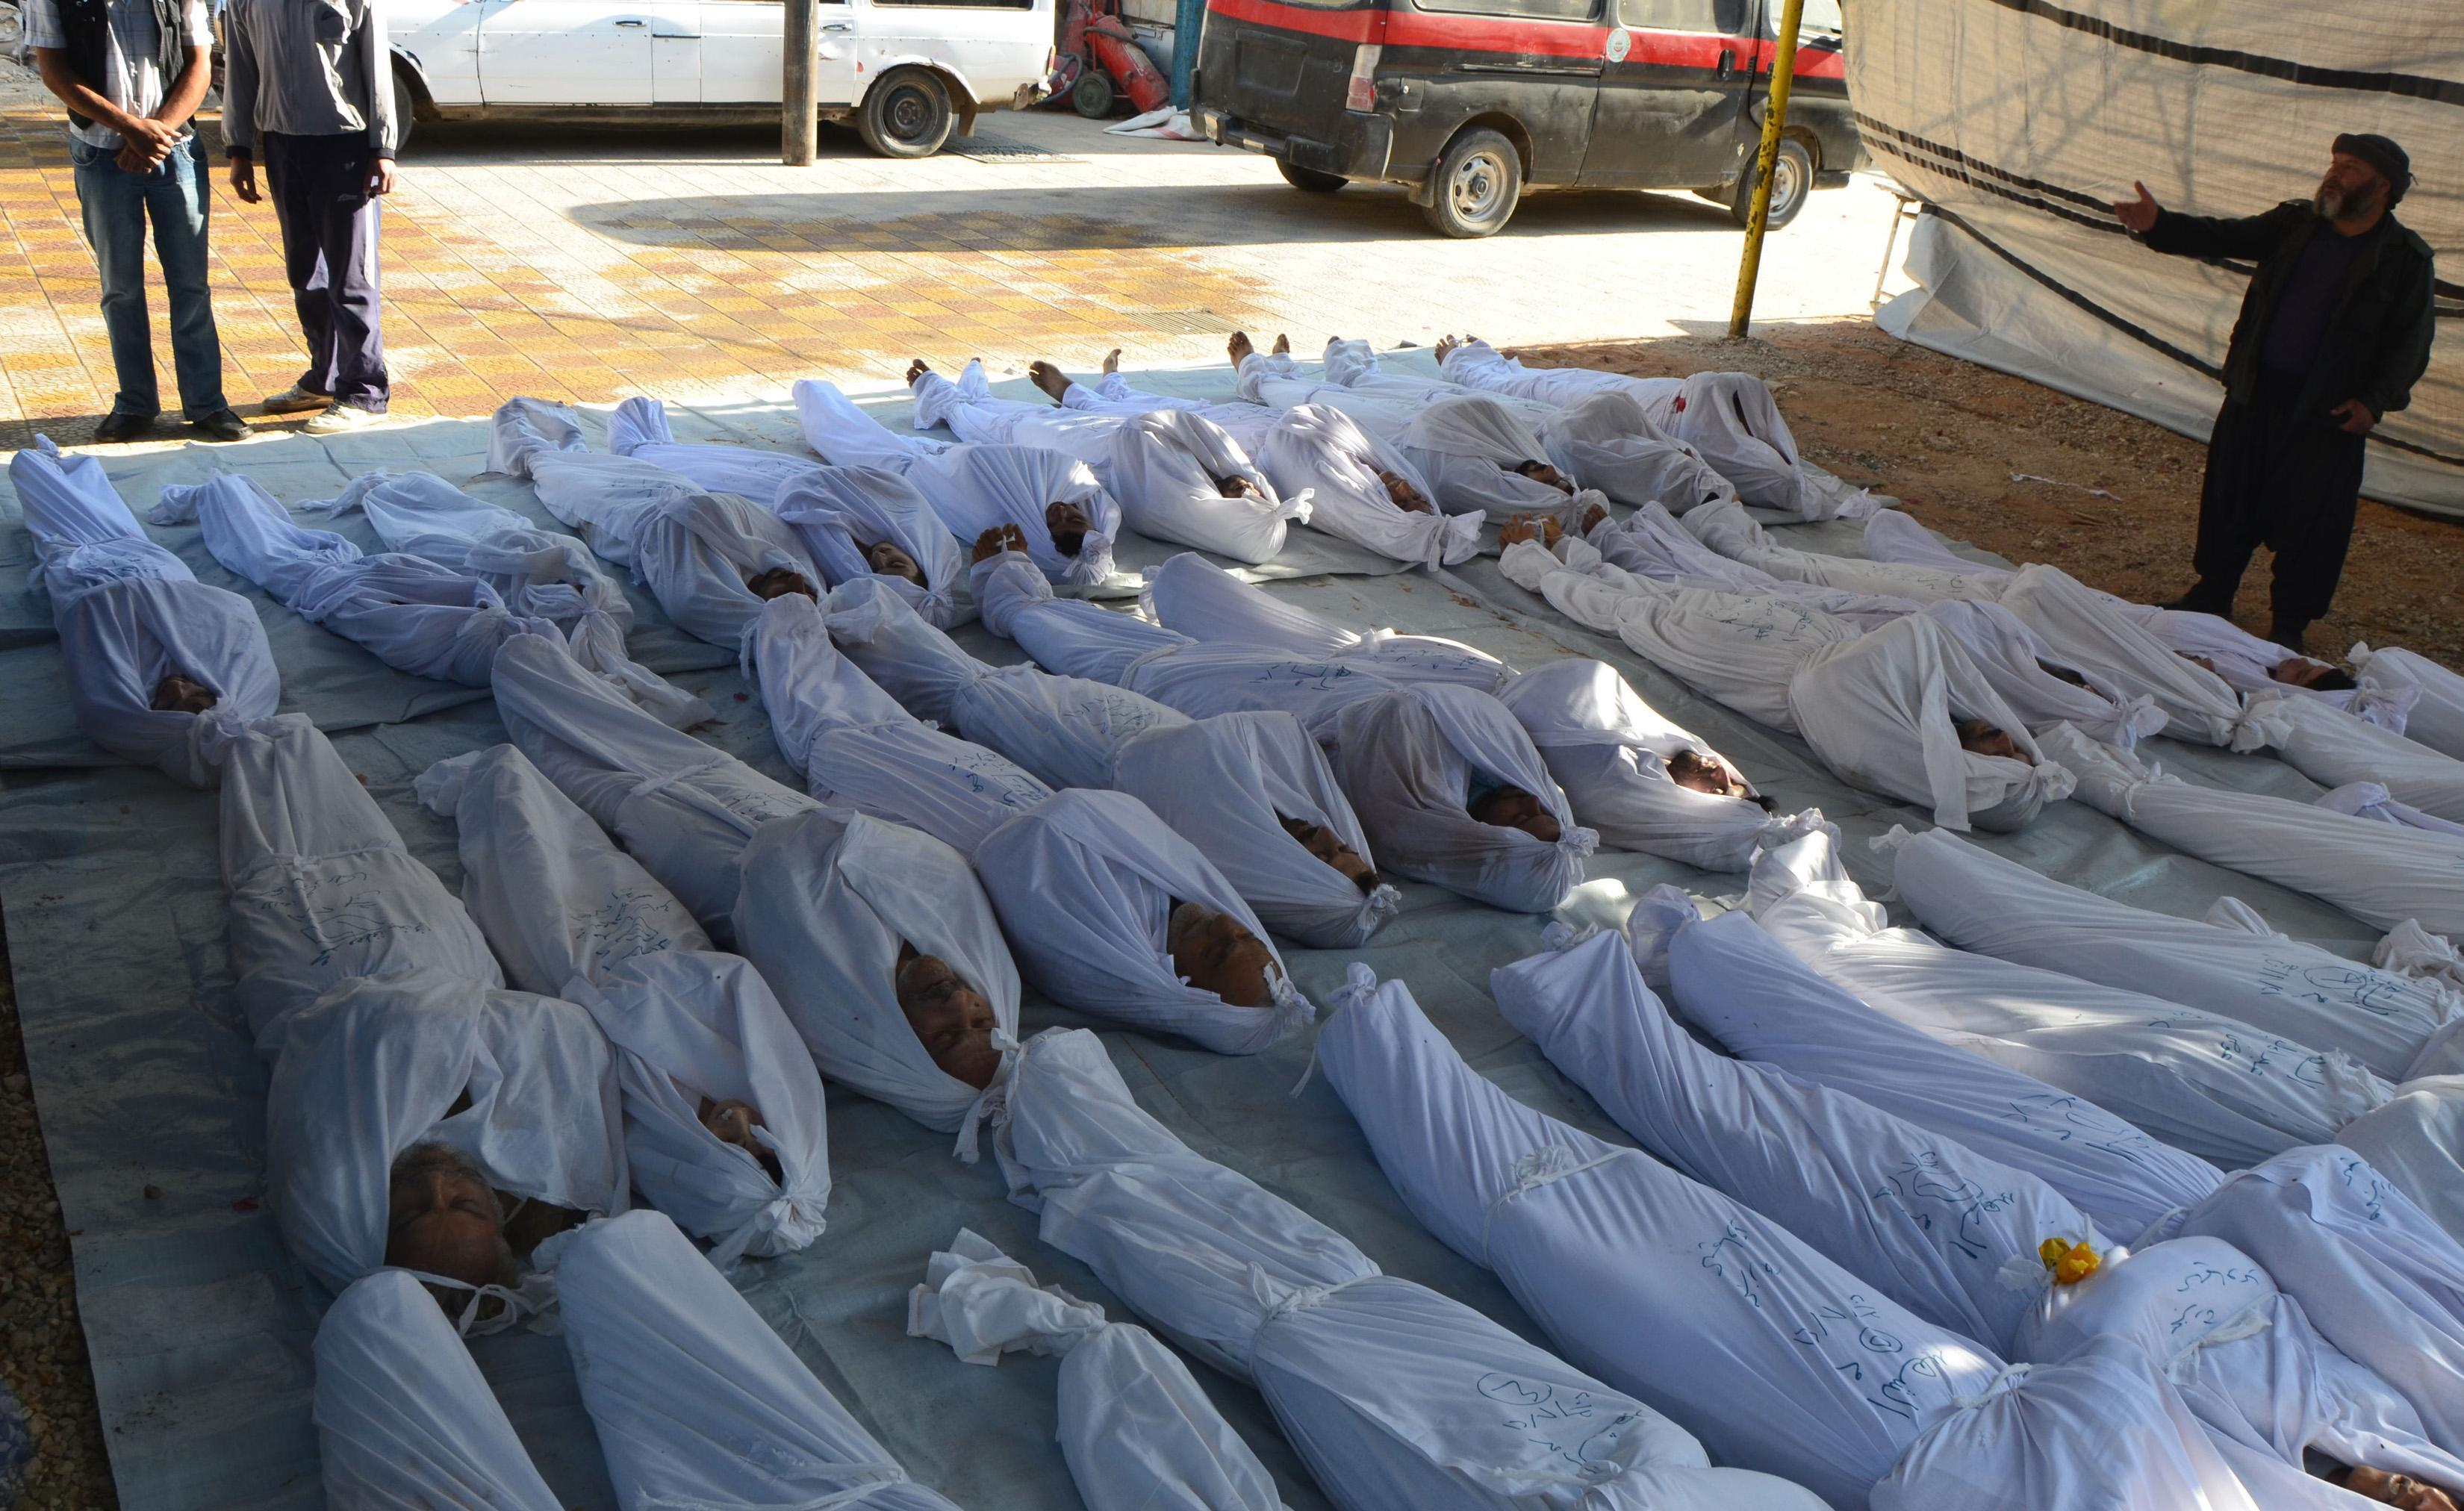 Syria gas attack bodies